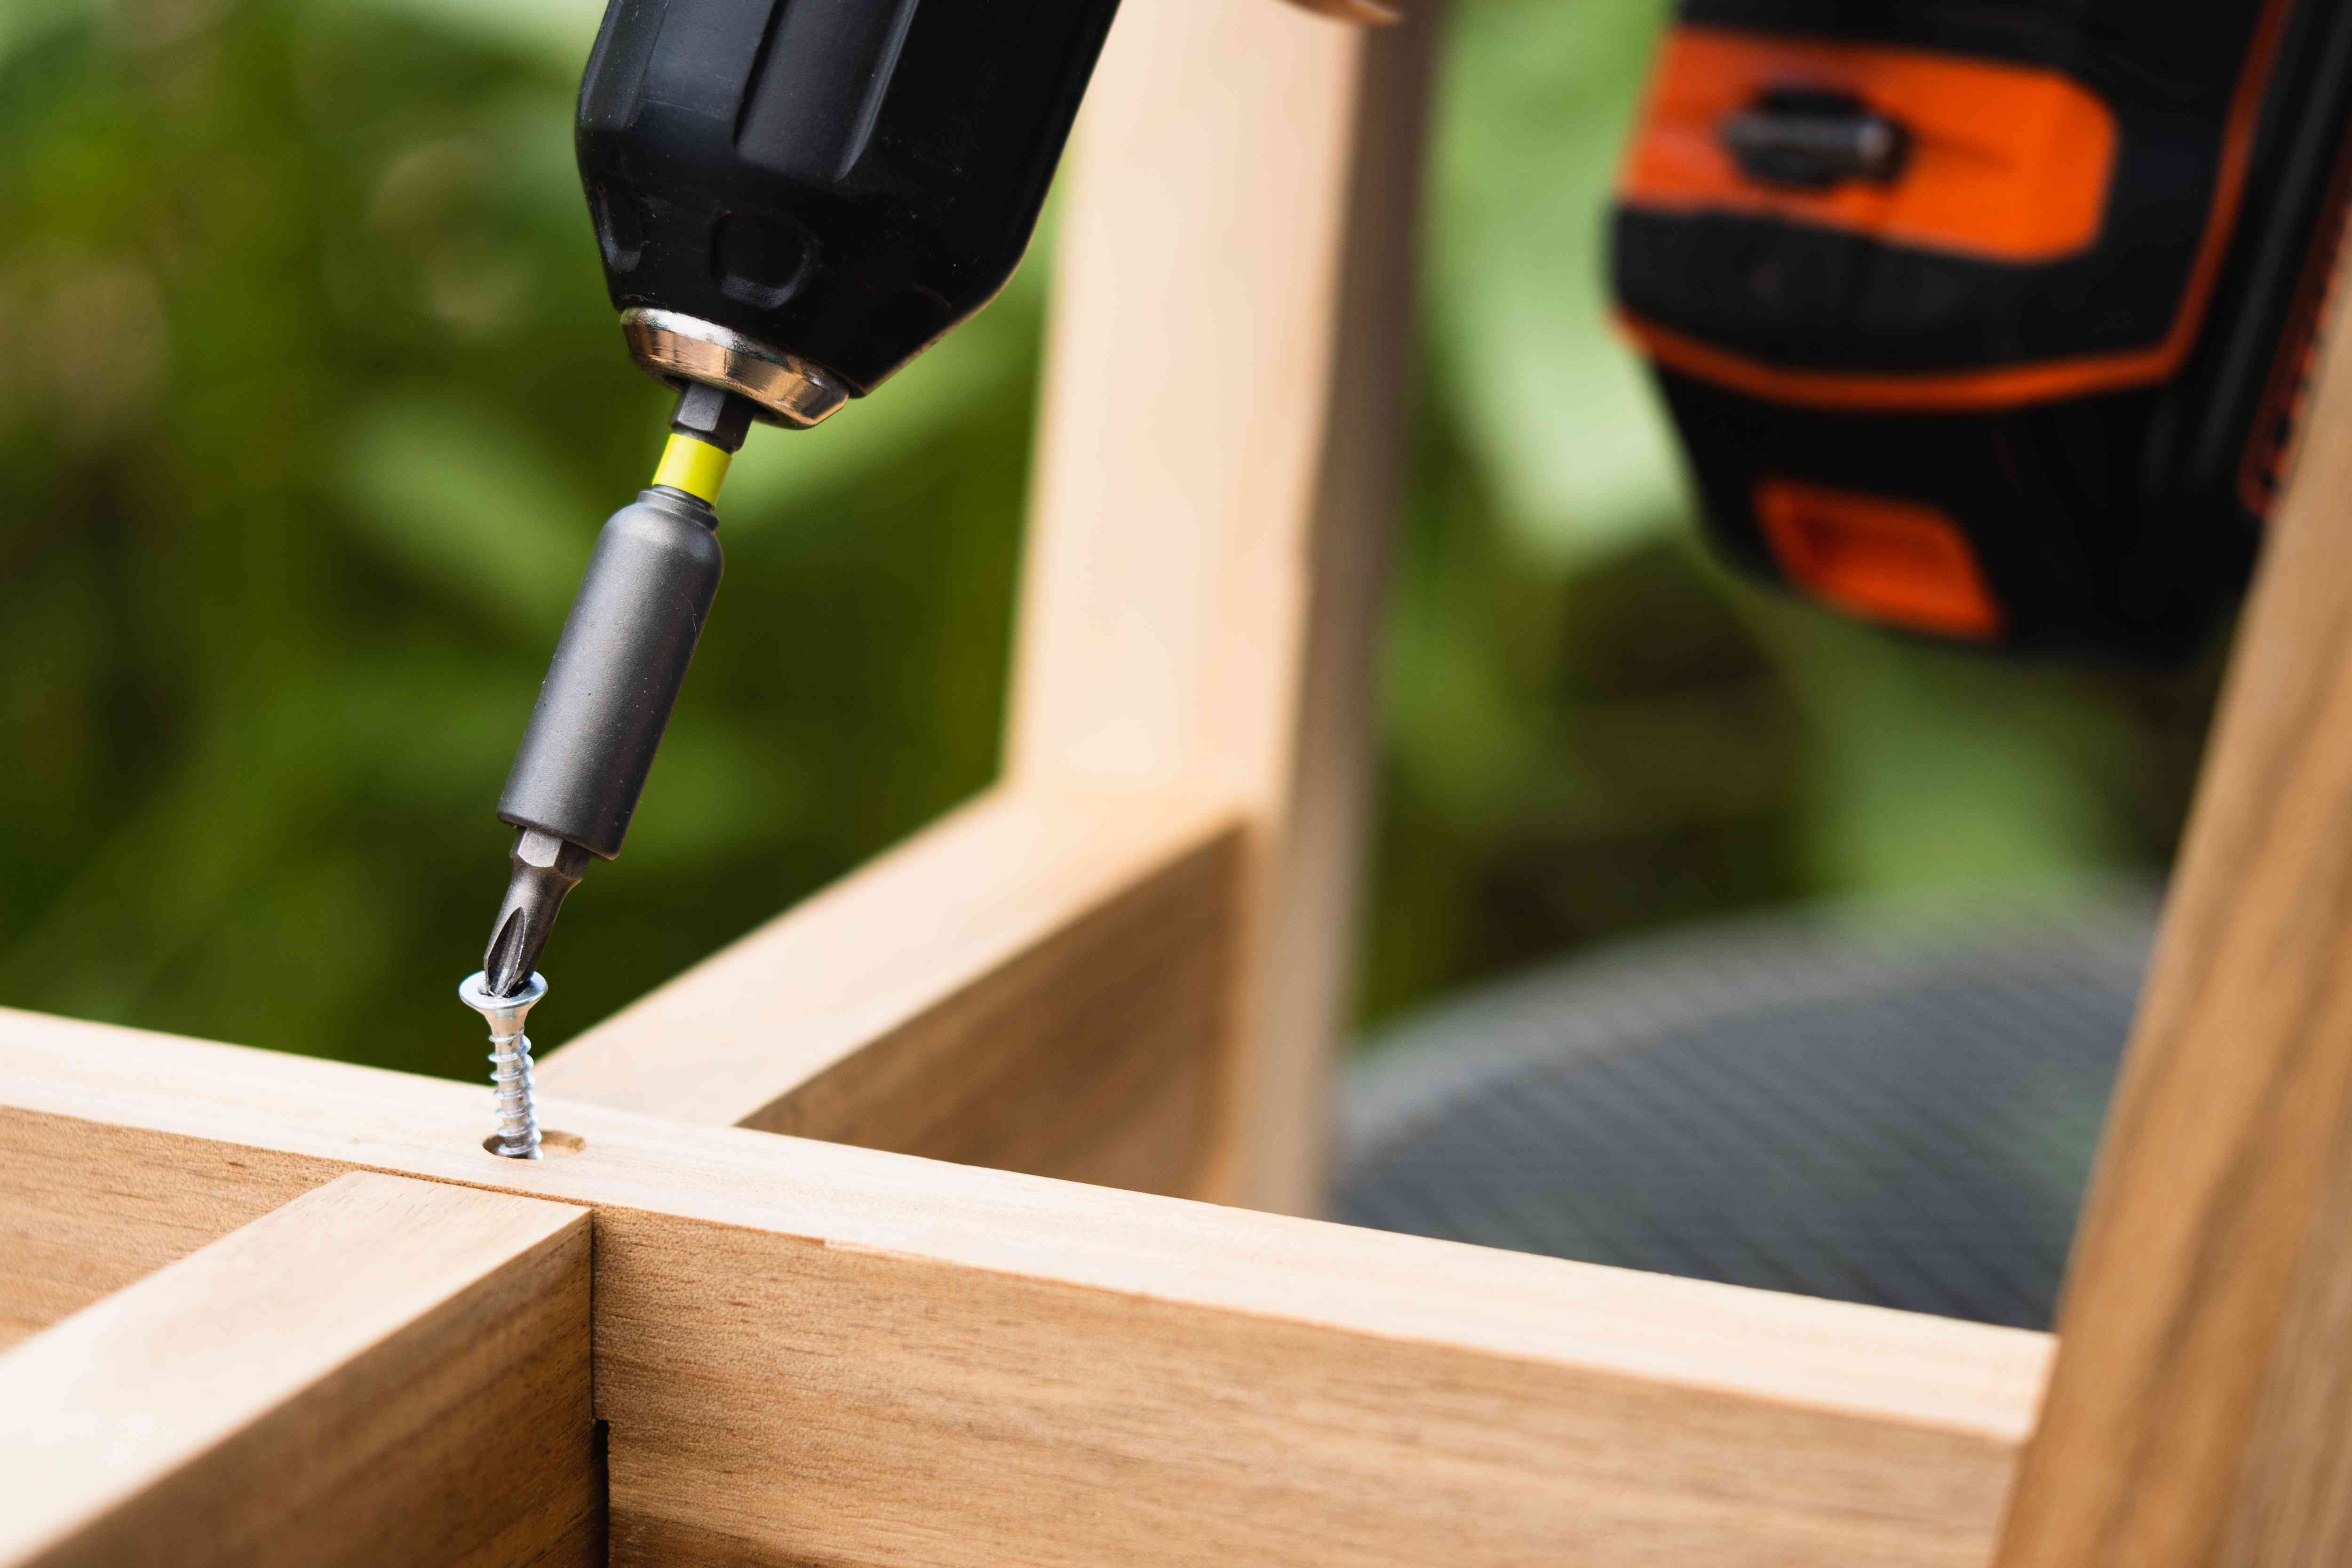 Larger bit drive attached to electric drill to remove stripped screw from wooden fixture